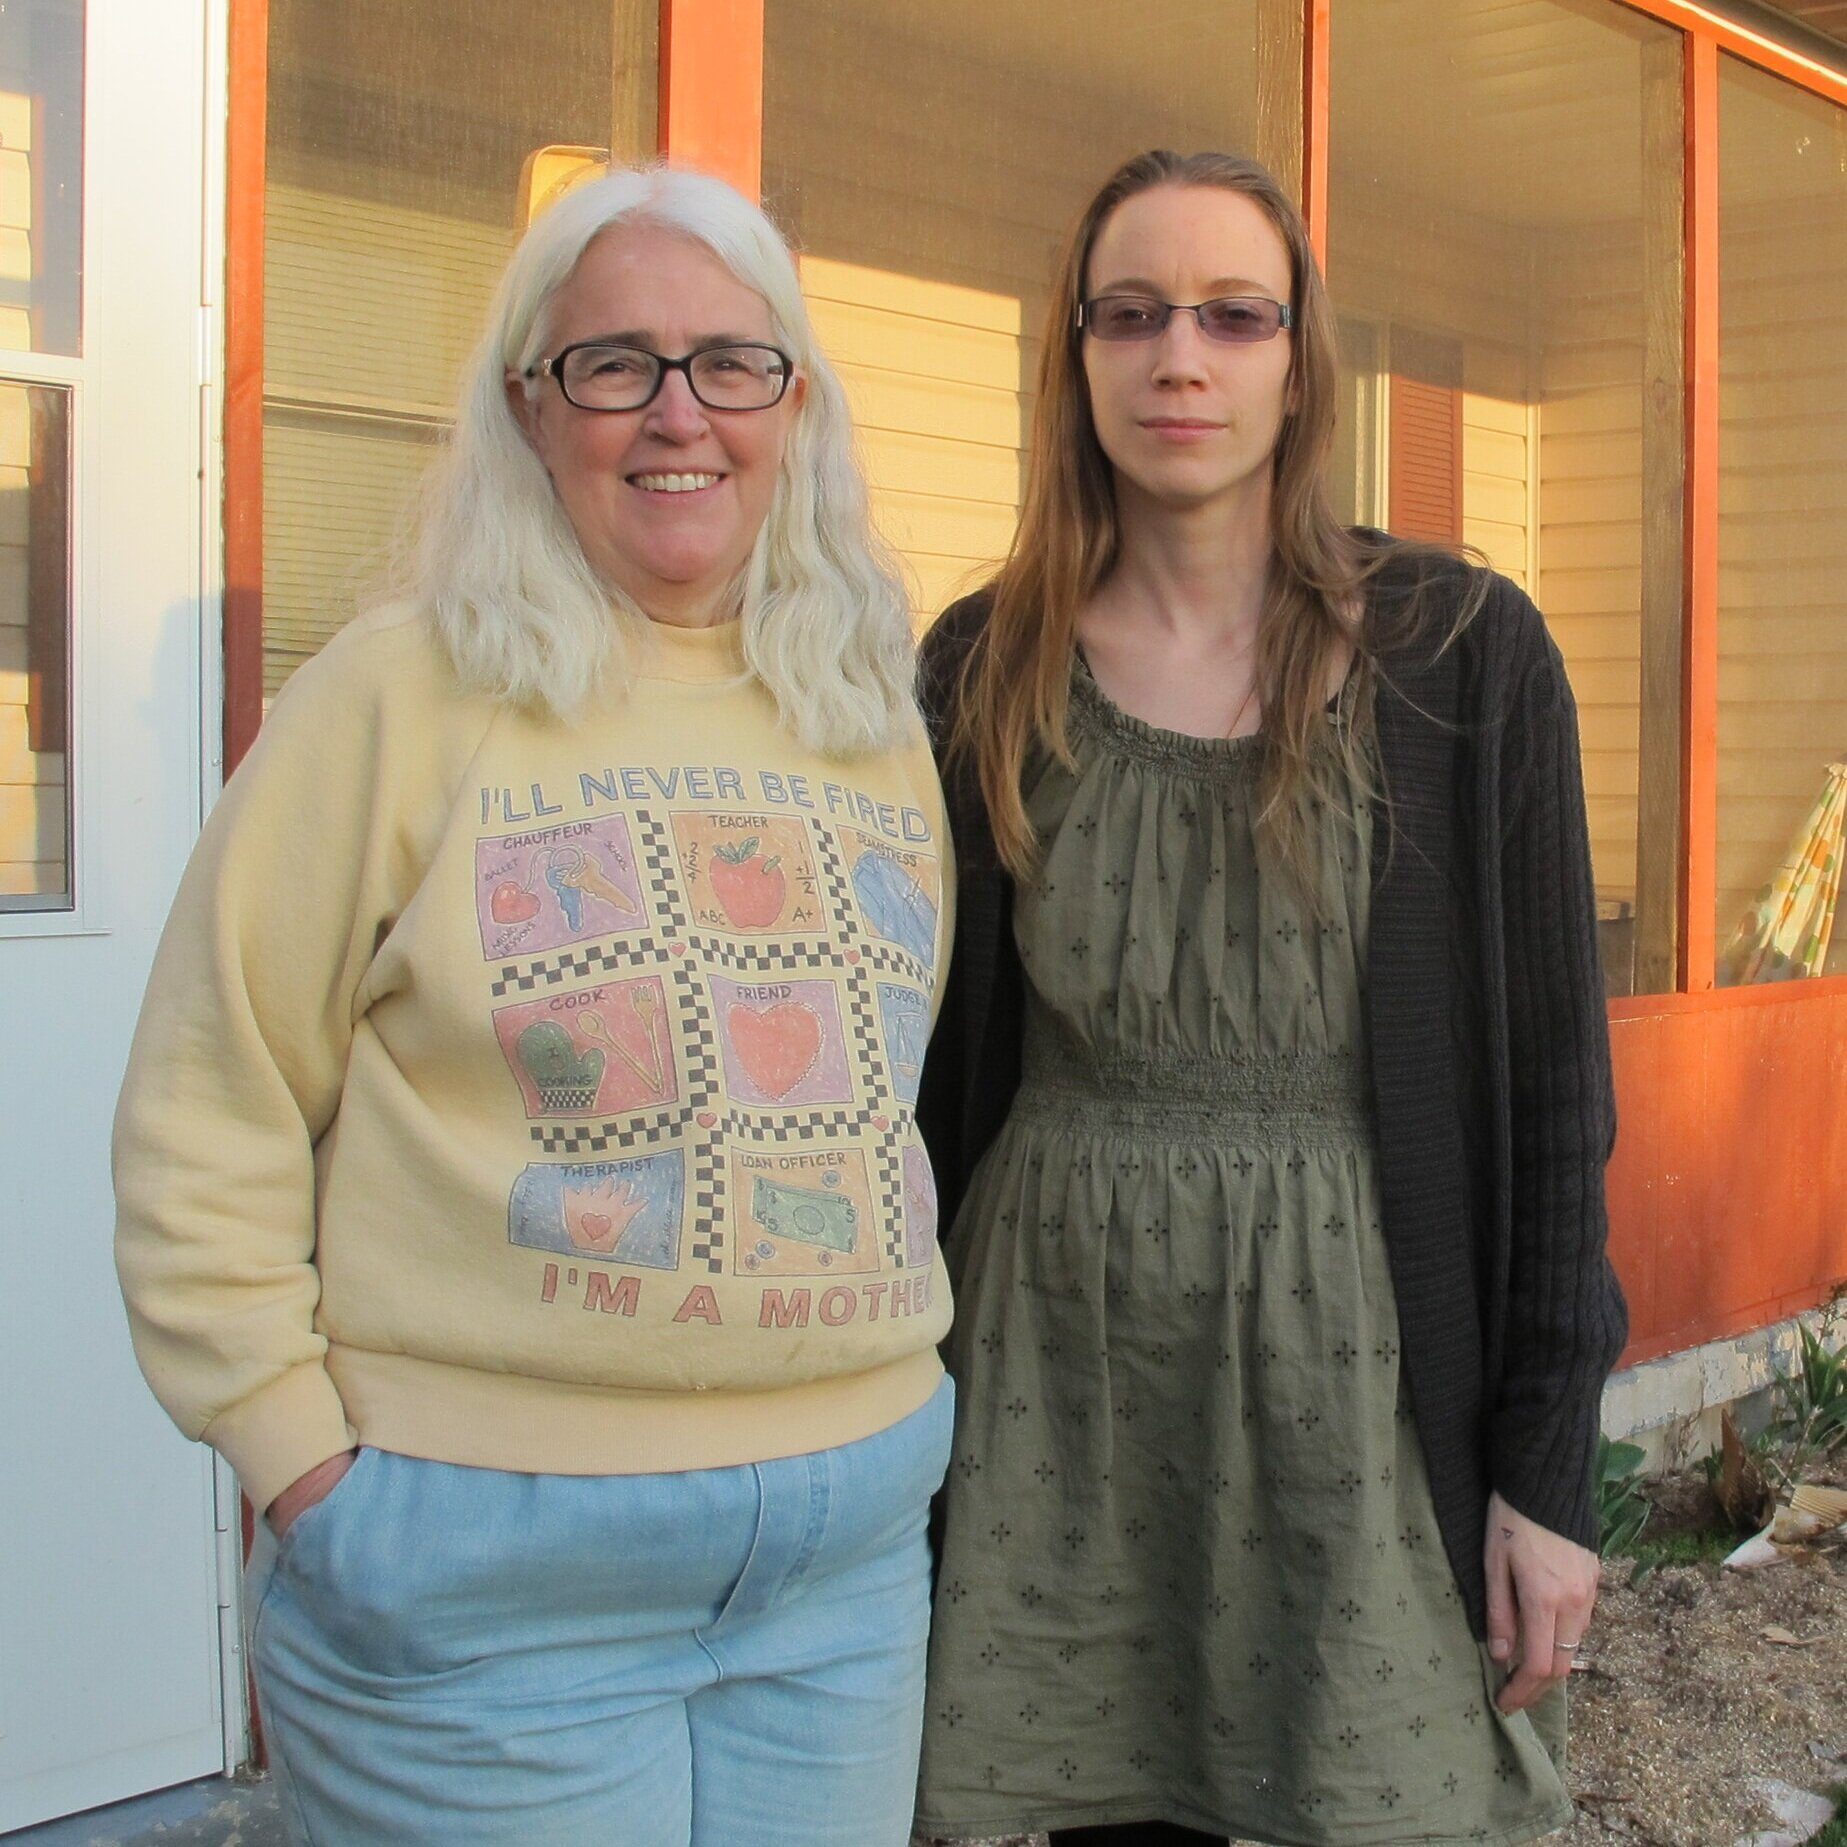 Ellen and Elise Gerhart  (Pennsylvania, United States) are a mother-daughter team who resisted the seizure of their land by eminent domain for the construction of a natural gas pipeline which would transport natural gas liquids for the production of plastics. Ellen and Elise welcomed protestors and resisters onto their land to form Camp White Pine, holding tree stands to block the pipeline construction. In 2018, Ellen, a retired schoolteacher and grandmother, was arrested for nonviolently resisting the pipeline construction.